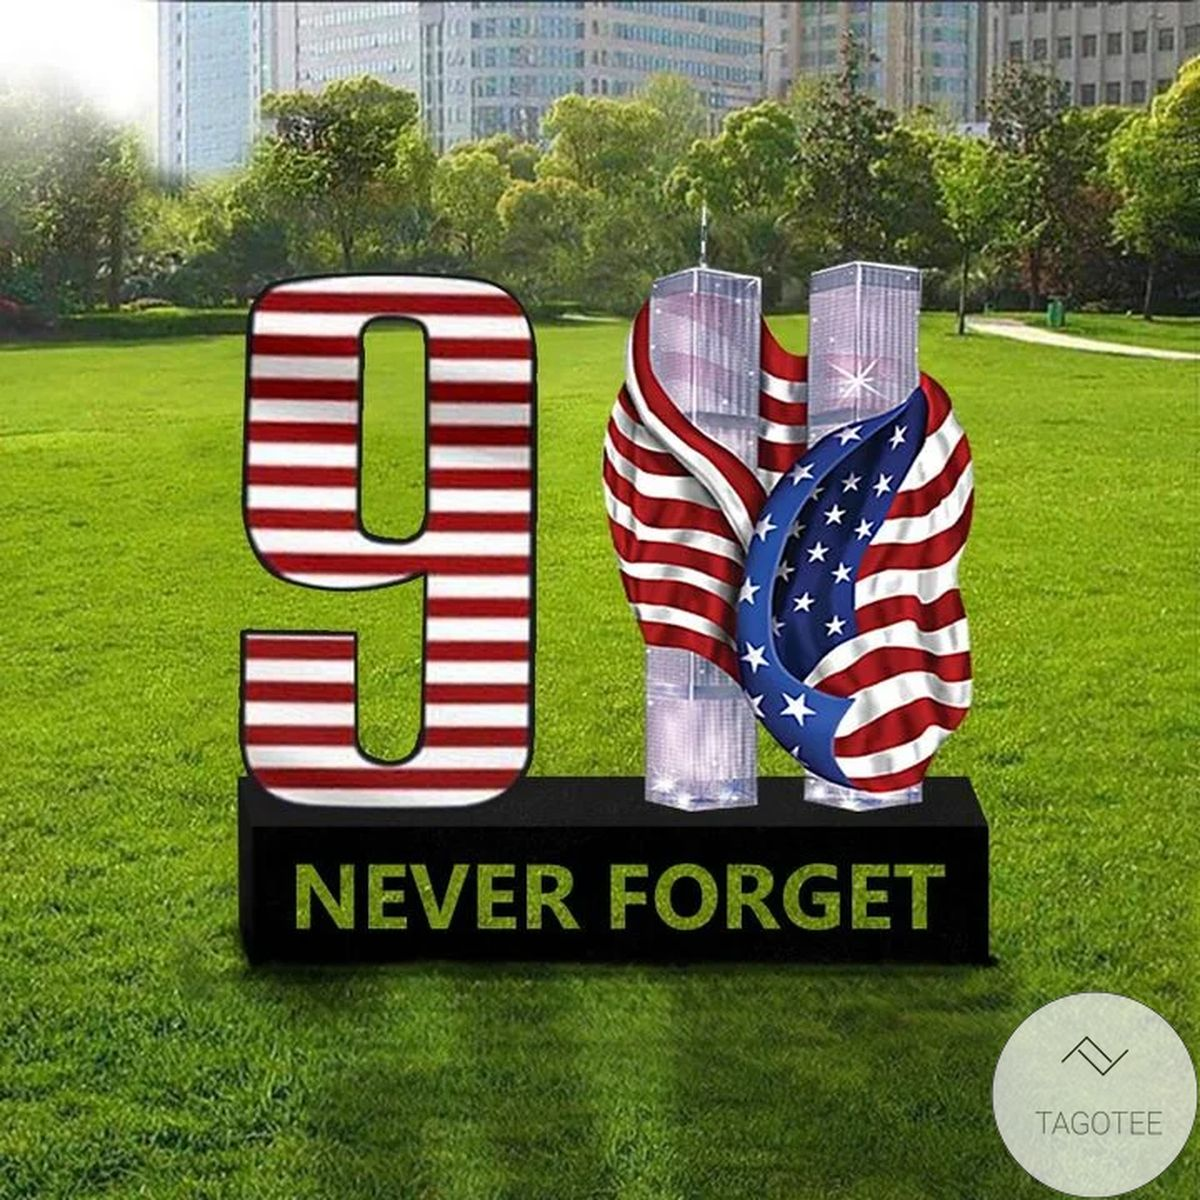 9.11 Never Forget Remembering September 11 2021 Patriot Day Two Tower Attacks Yard Sign